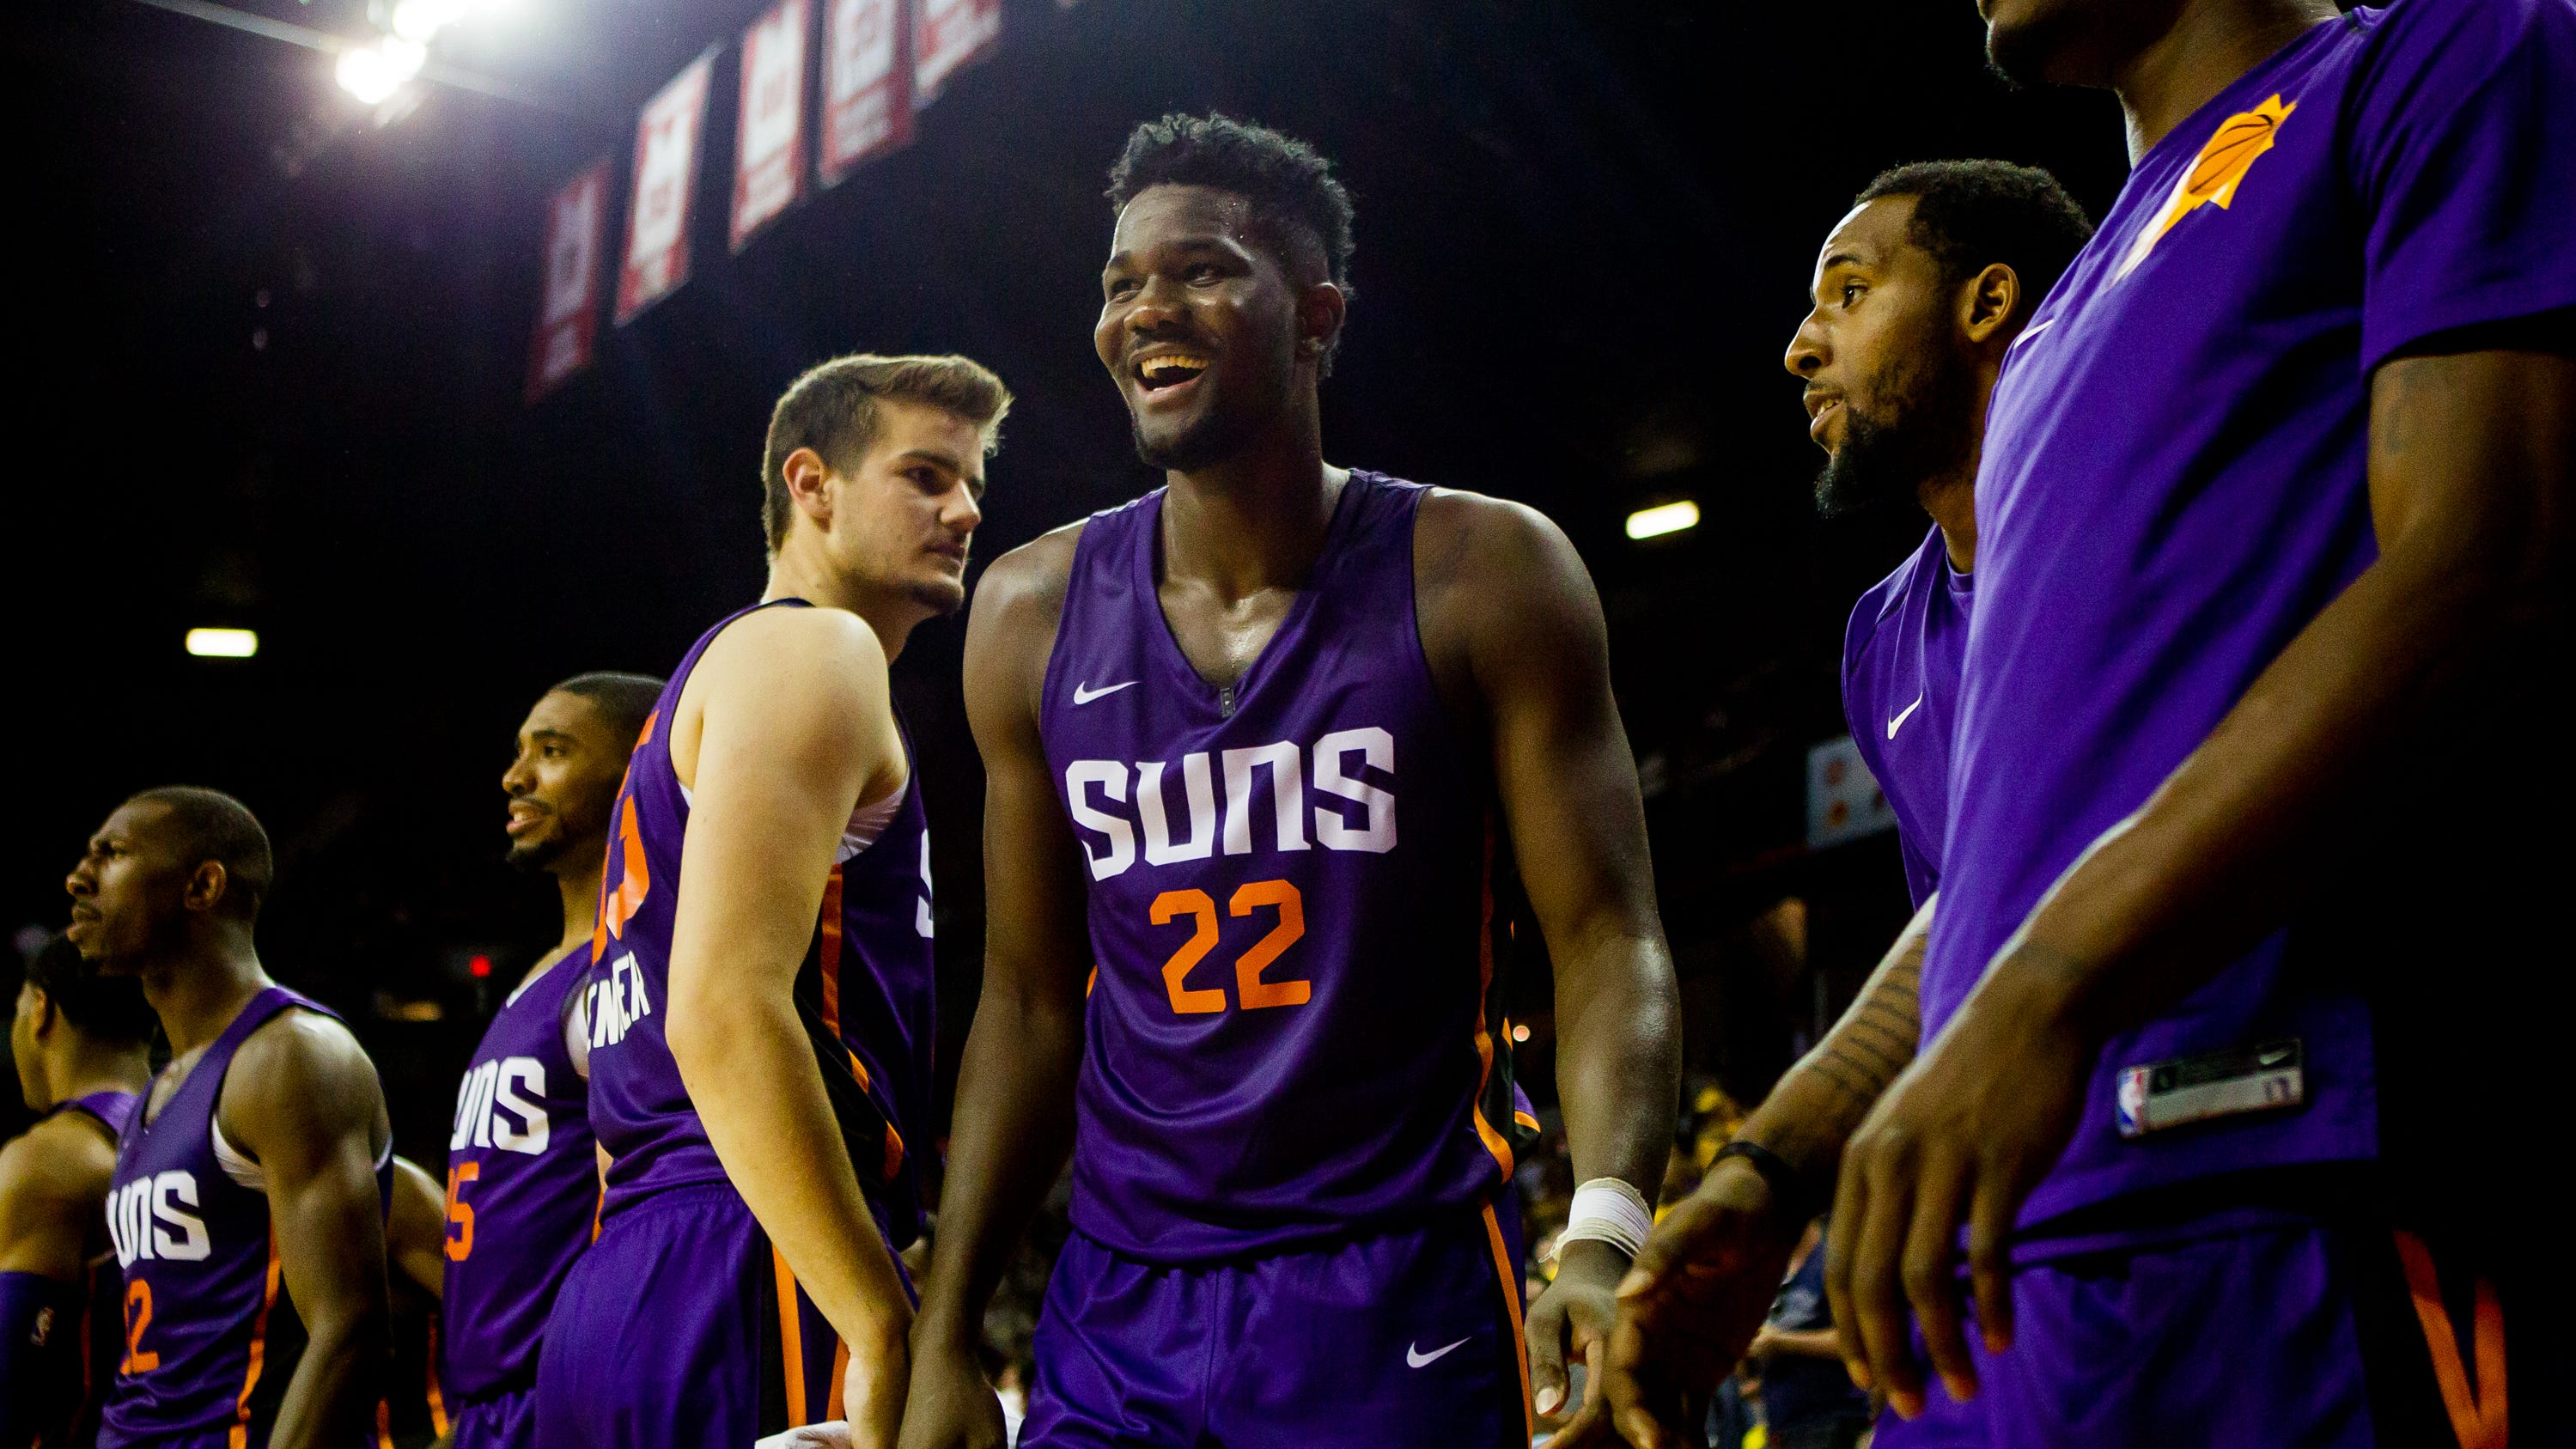 Deandre Ayton make have stoked the flames of a budding rivalry with Sixers big man Joel Embiid this weekend.